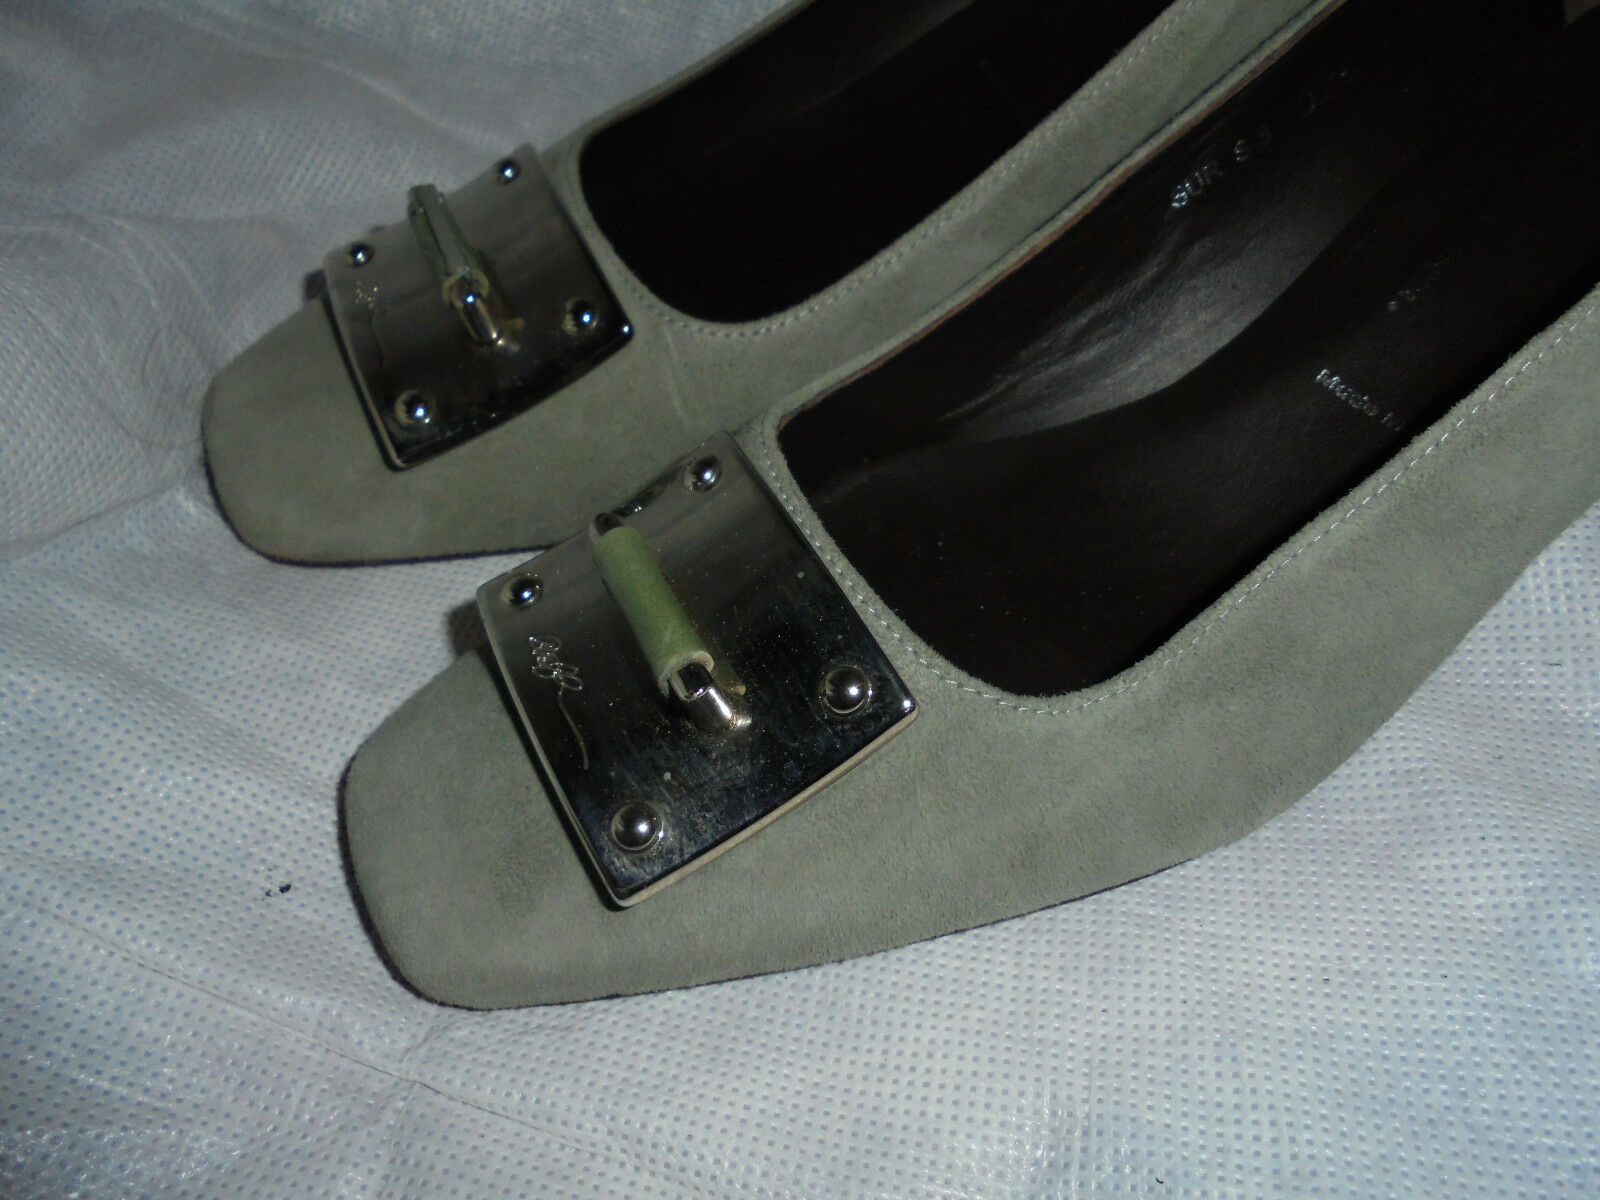 DONALD J PLINER WOMEN SUEDE LEATHER SLIP ON ON ON SHOE SIZE UK 4.5 EU 37 US 7.5 M VGC acecd7